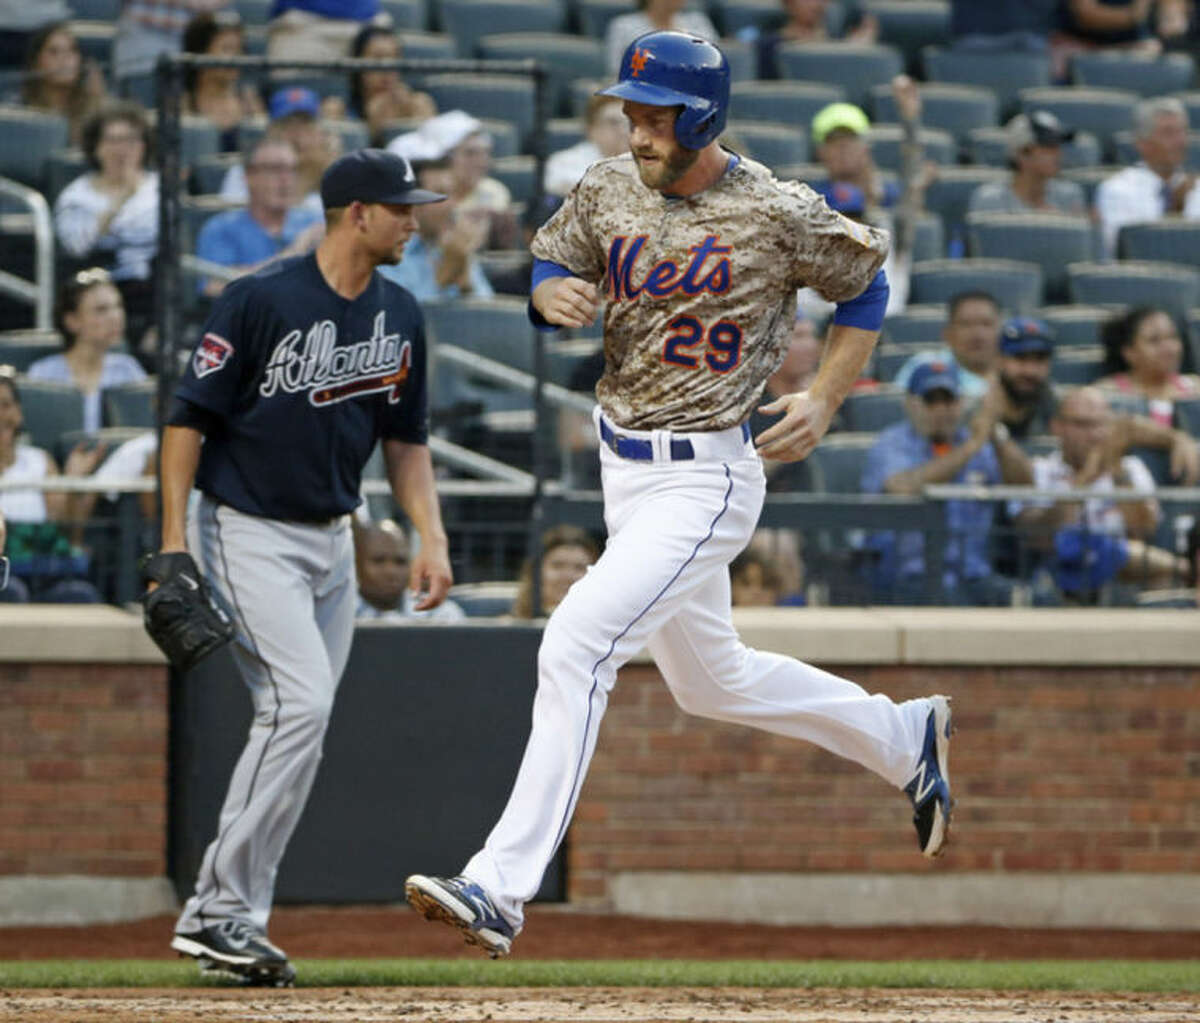 New York Mets Eric Campbell, right, scores on Travisd d'Arnaud's second-inning RBI double off Atlanta Braves starting pitcher Mike Minor, left, in a baseball game in New York, Monday, July 7, 2014. (AP Photo/Kathy Willens)